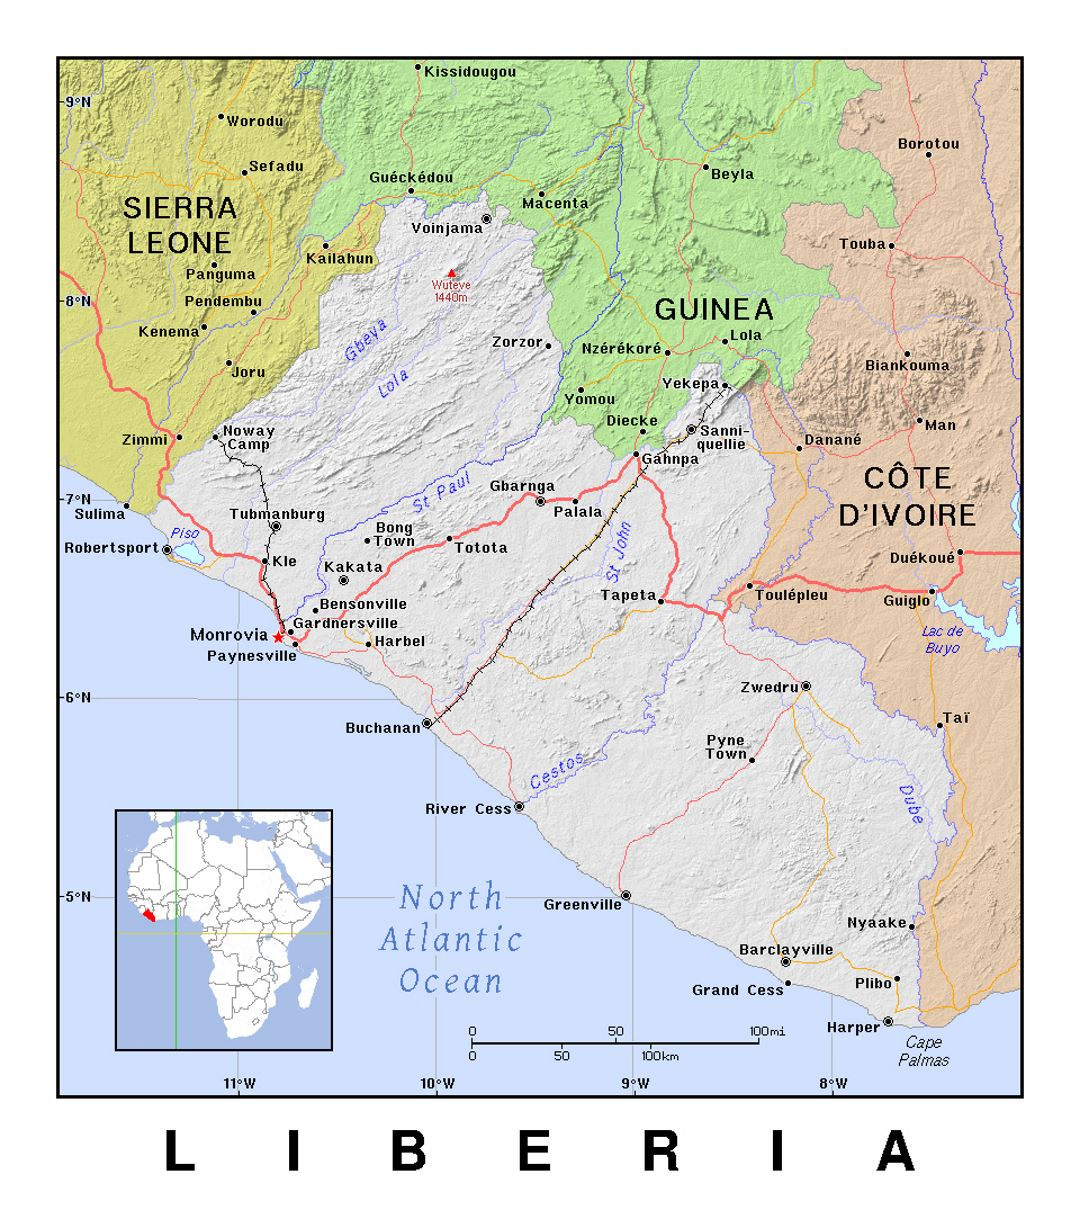 Detailed political map of Liberia with relief